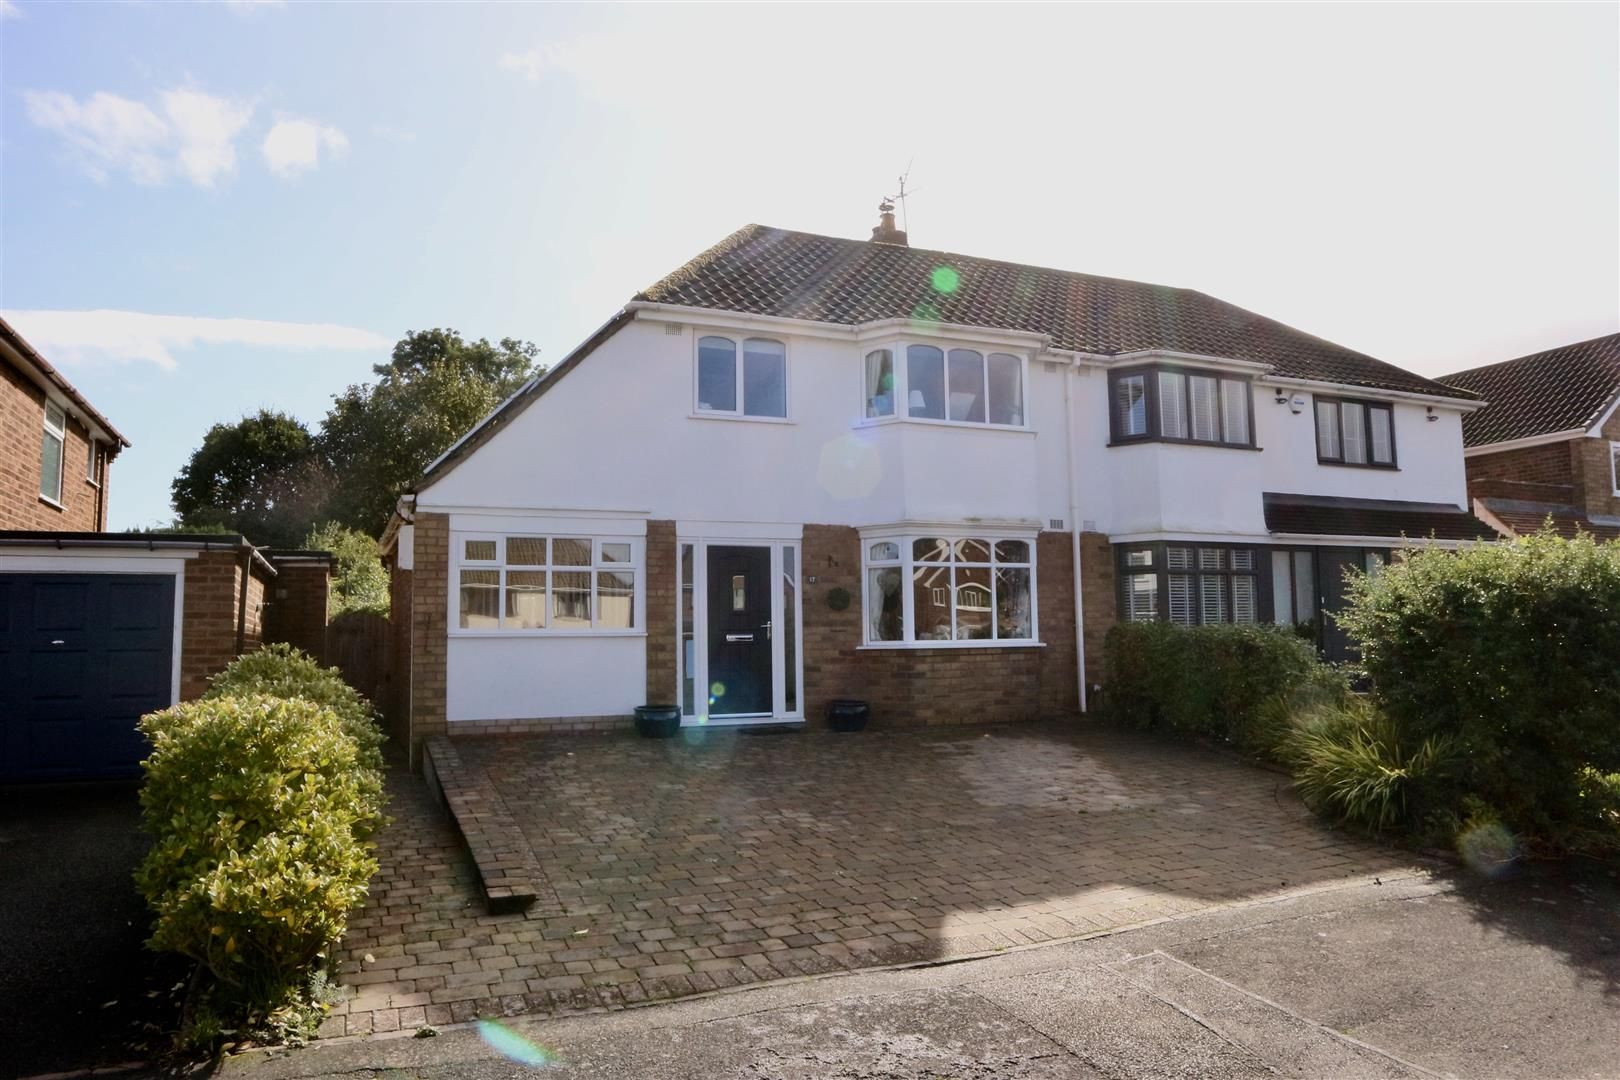 3 bed semi-detached for sale in Pedmore 1